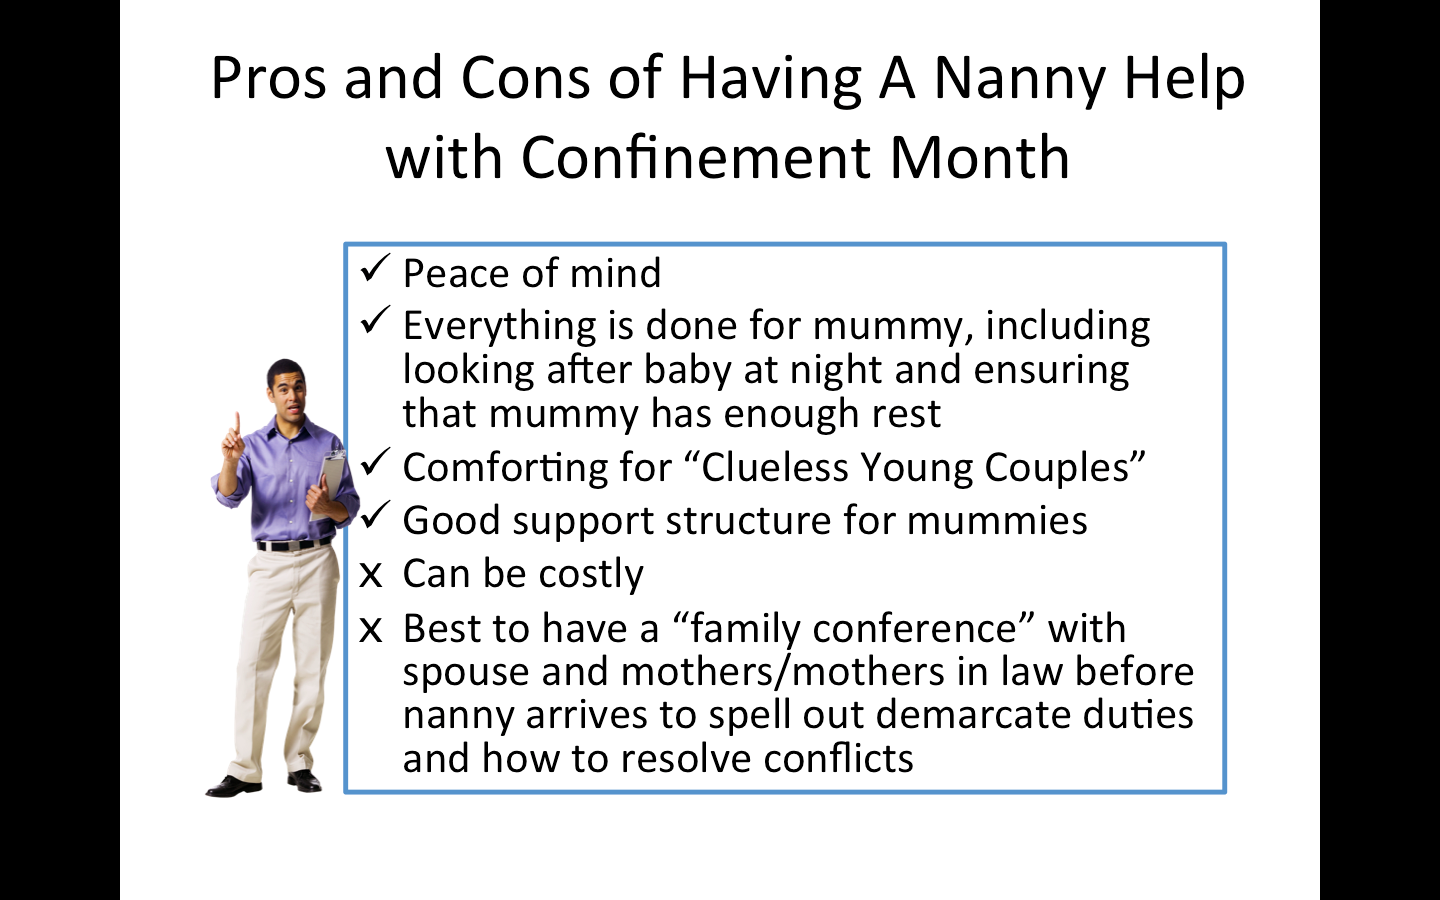 Pros and Cons of Having A Confinement Nanny Help during Confinement Month